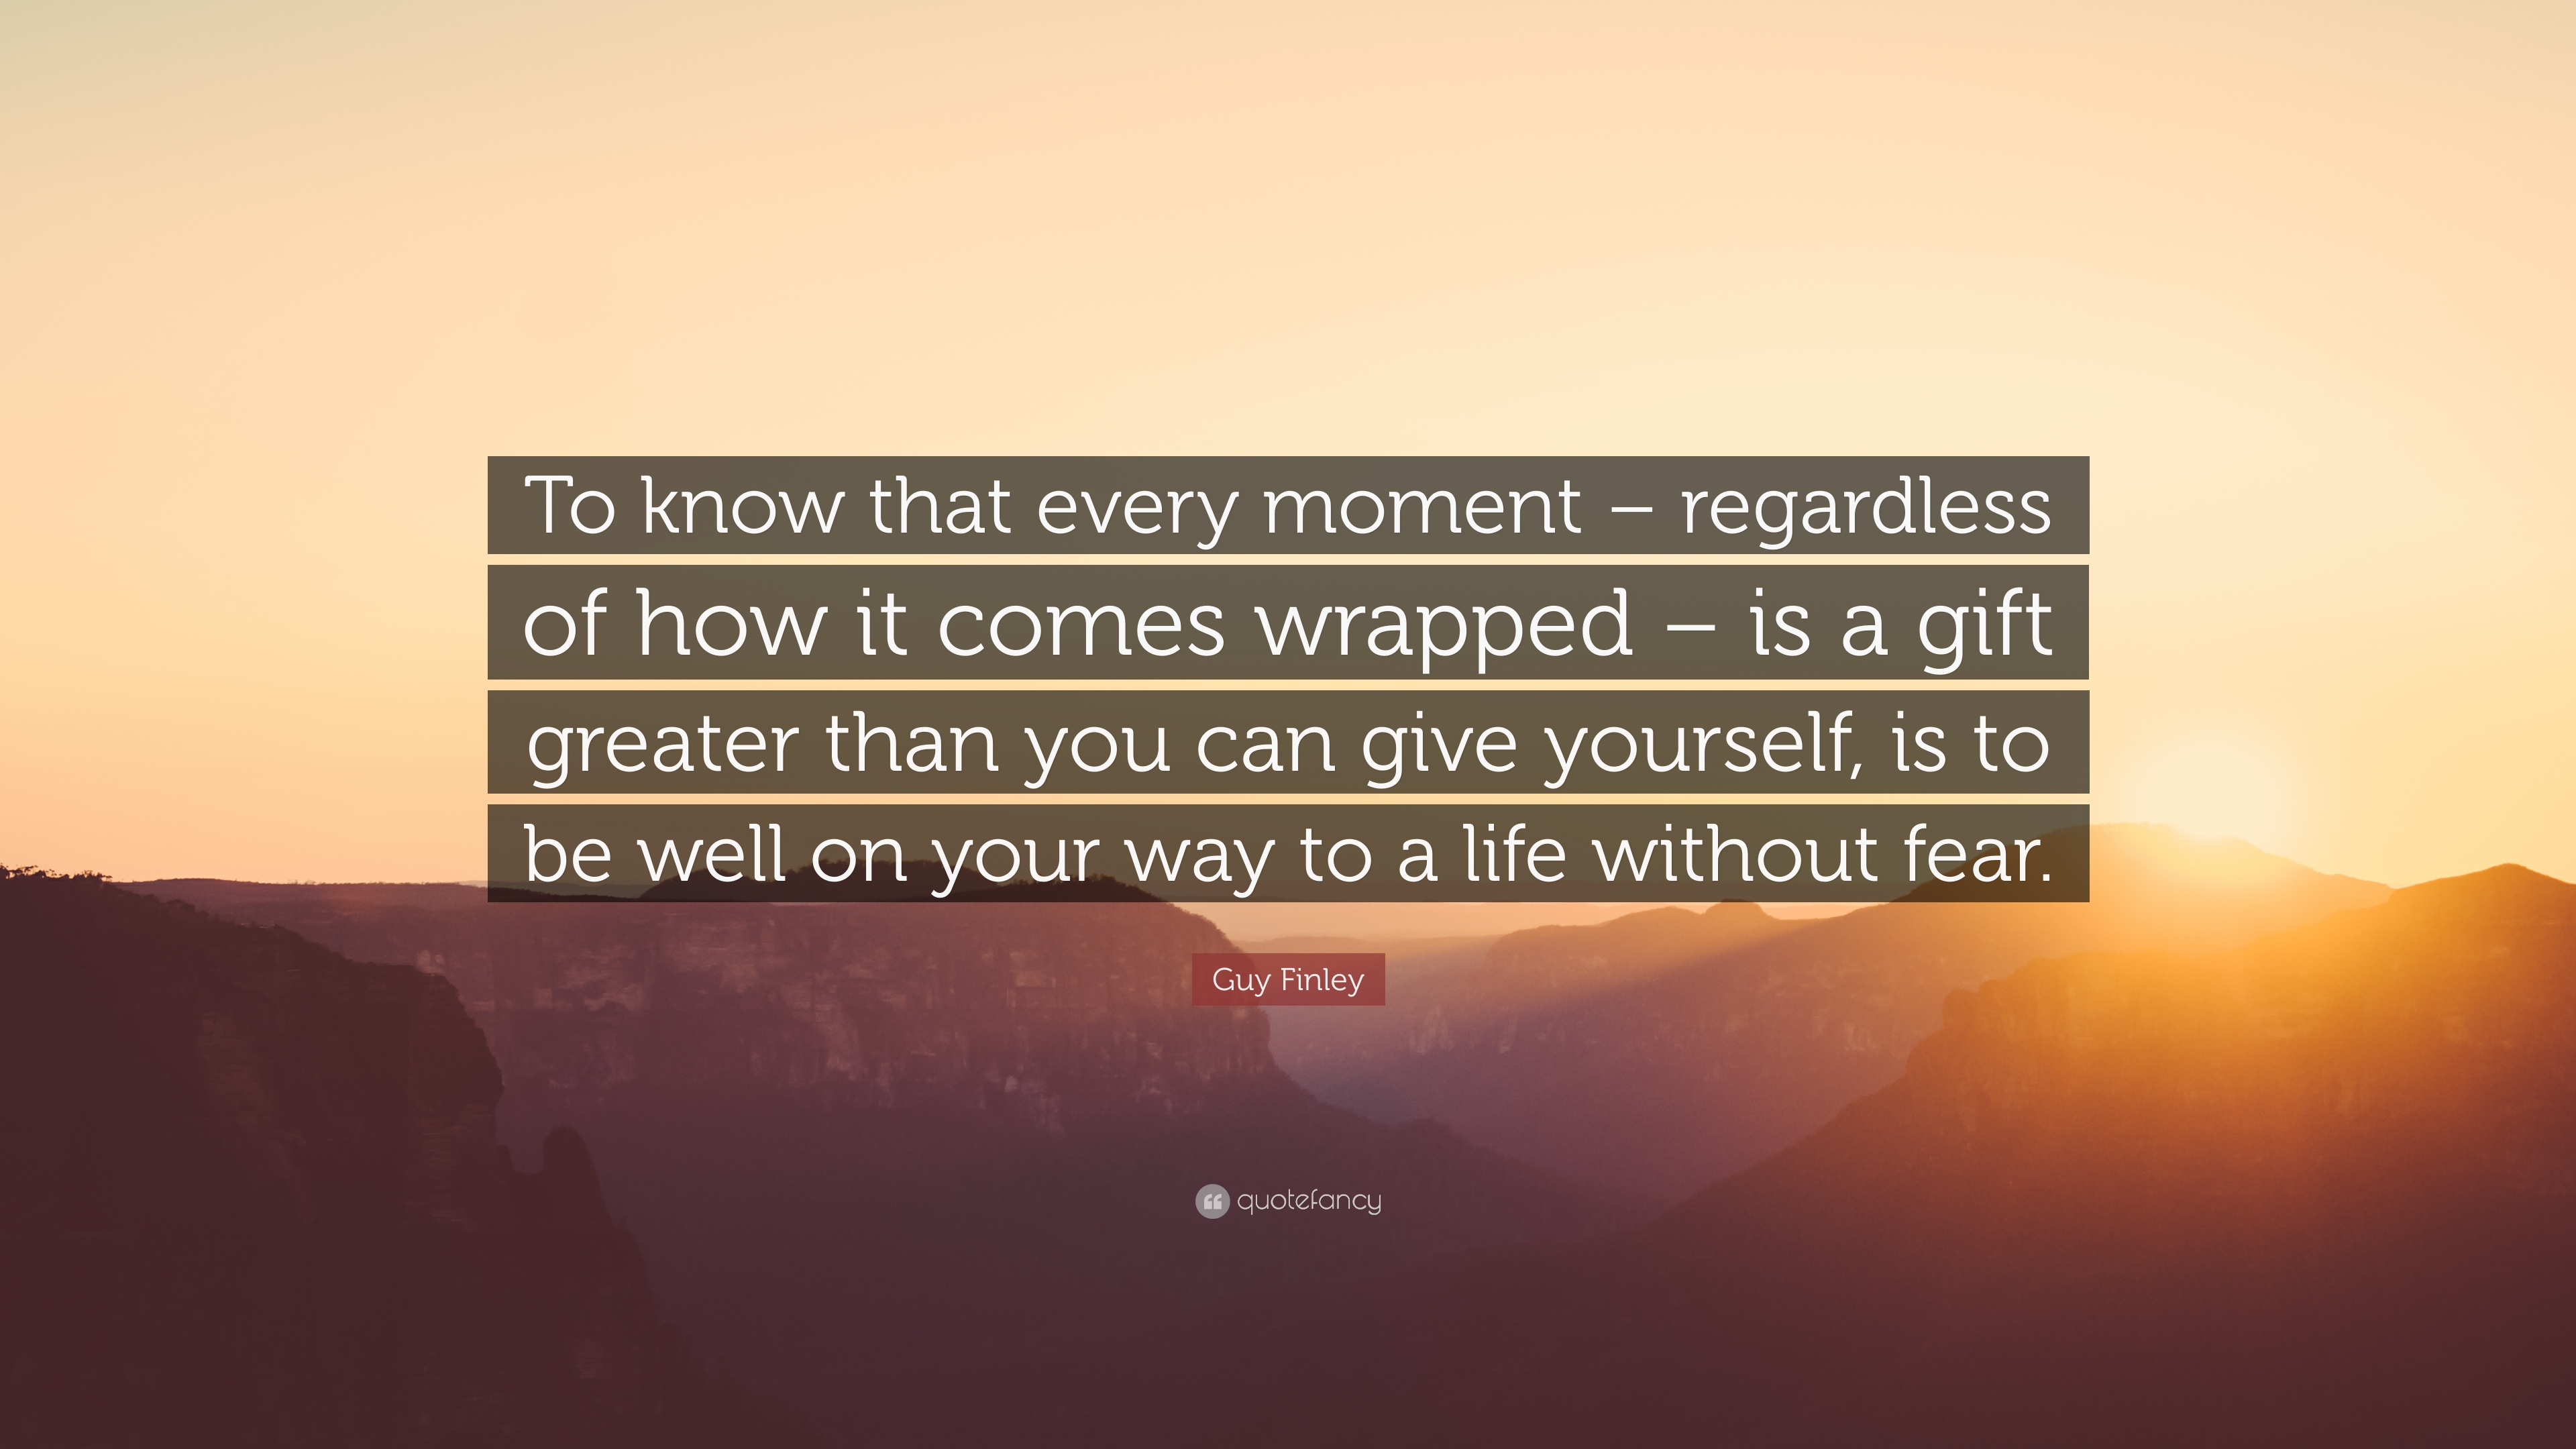 Guy finley quote to know that every moment regardless of how it guy finley quote to know that every moment regardless of how it comes solutioingenieria Choice Image